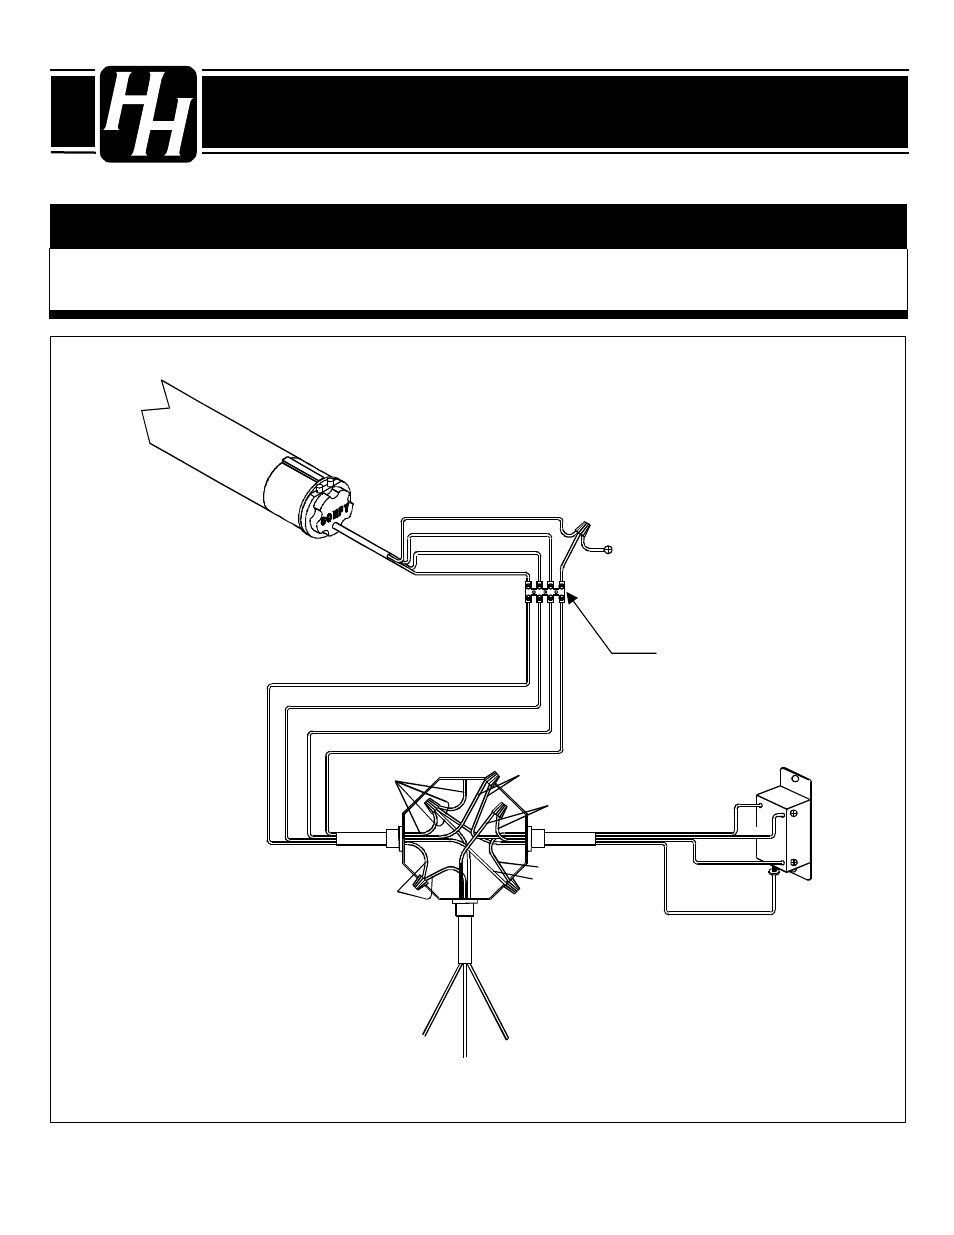 Starting System Wiring Diagram John Deere 4020 Layout 24 Volt 12v Relay Jd Basic Ignition